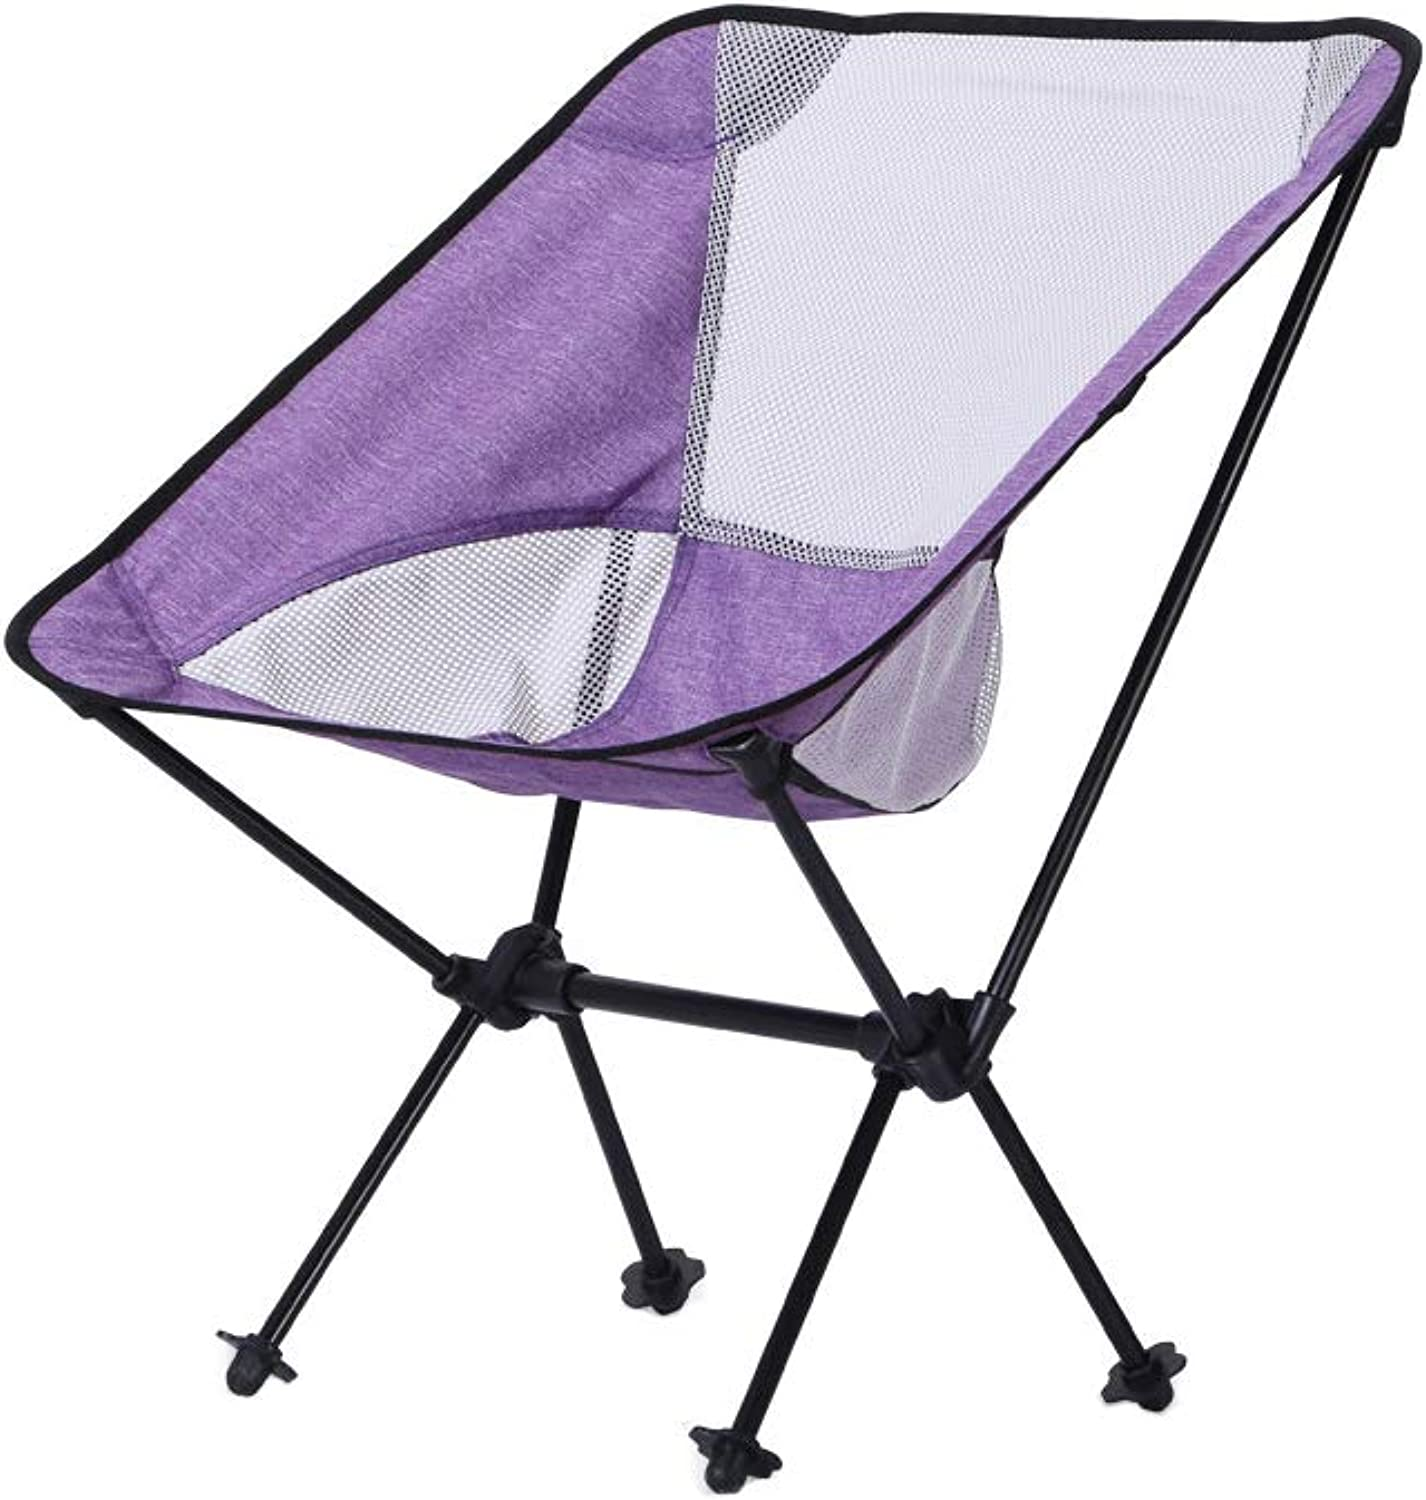 Camping Chair Lightweight Folding Chair with Carry Bag for Hiking Fishing Beach Chair